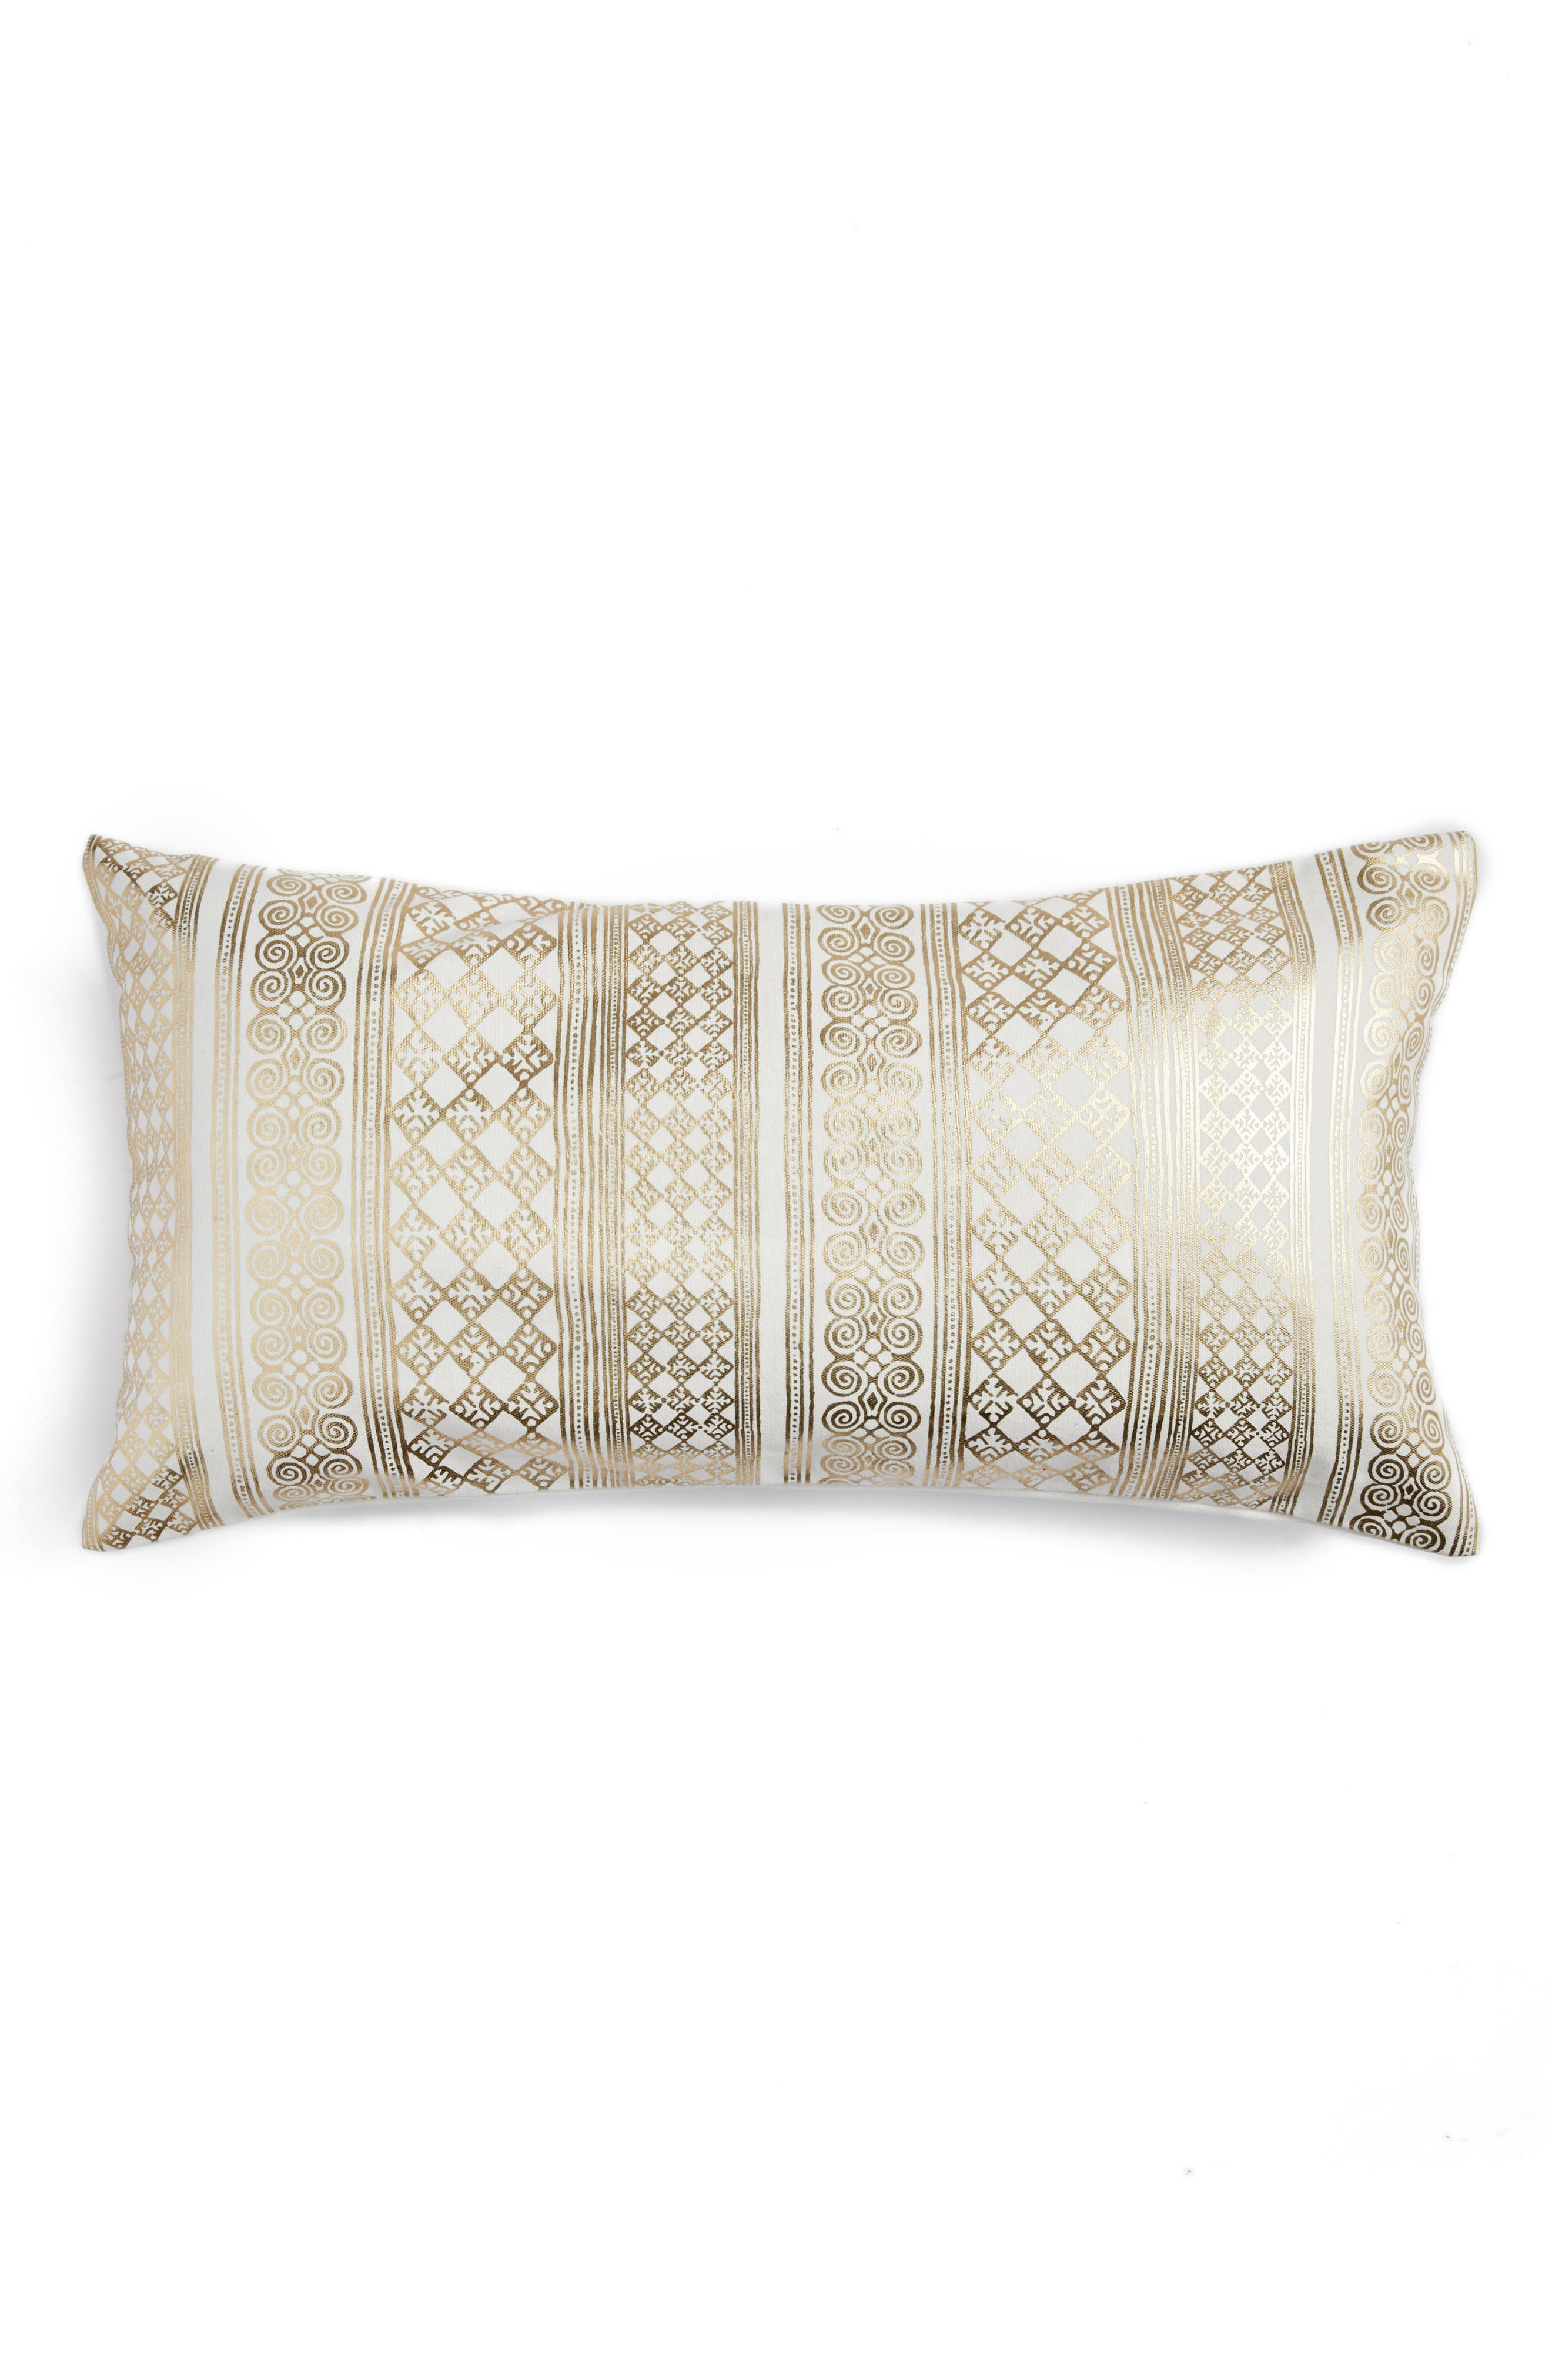 Alternate Image 1 Selected - Levtex Foil Screenprint Accent Pillow